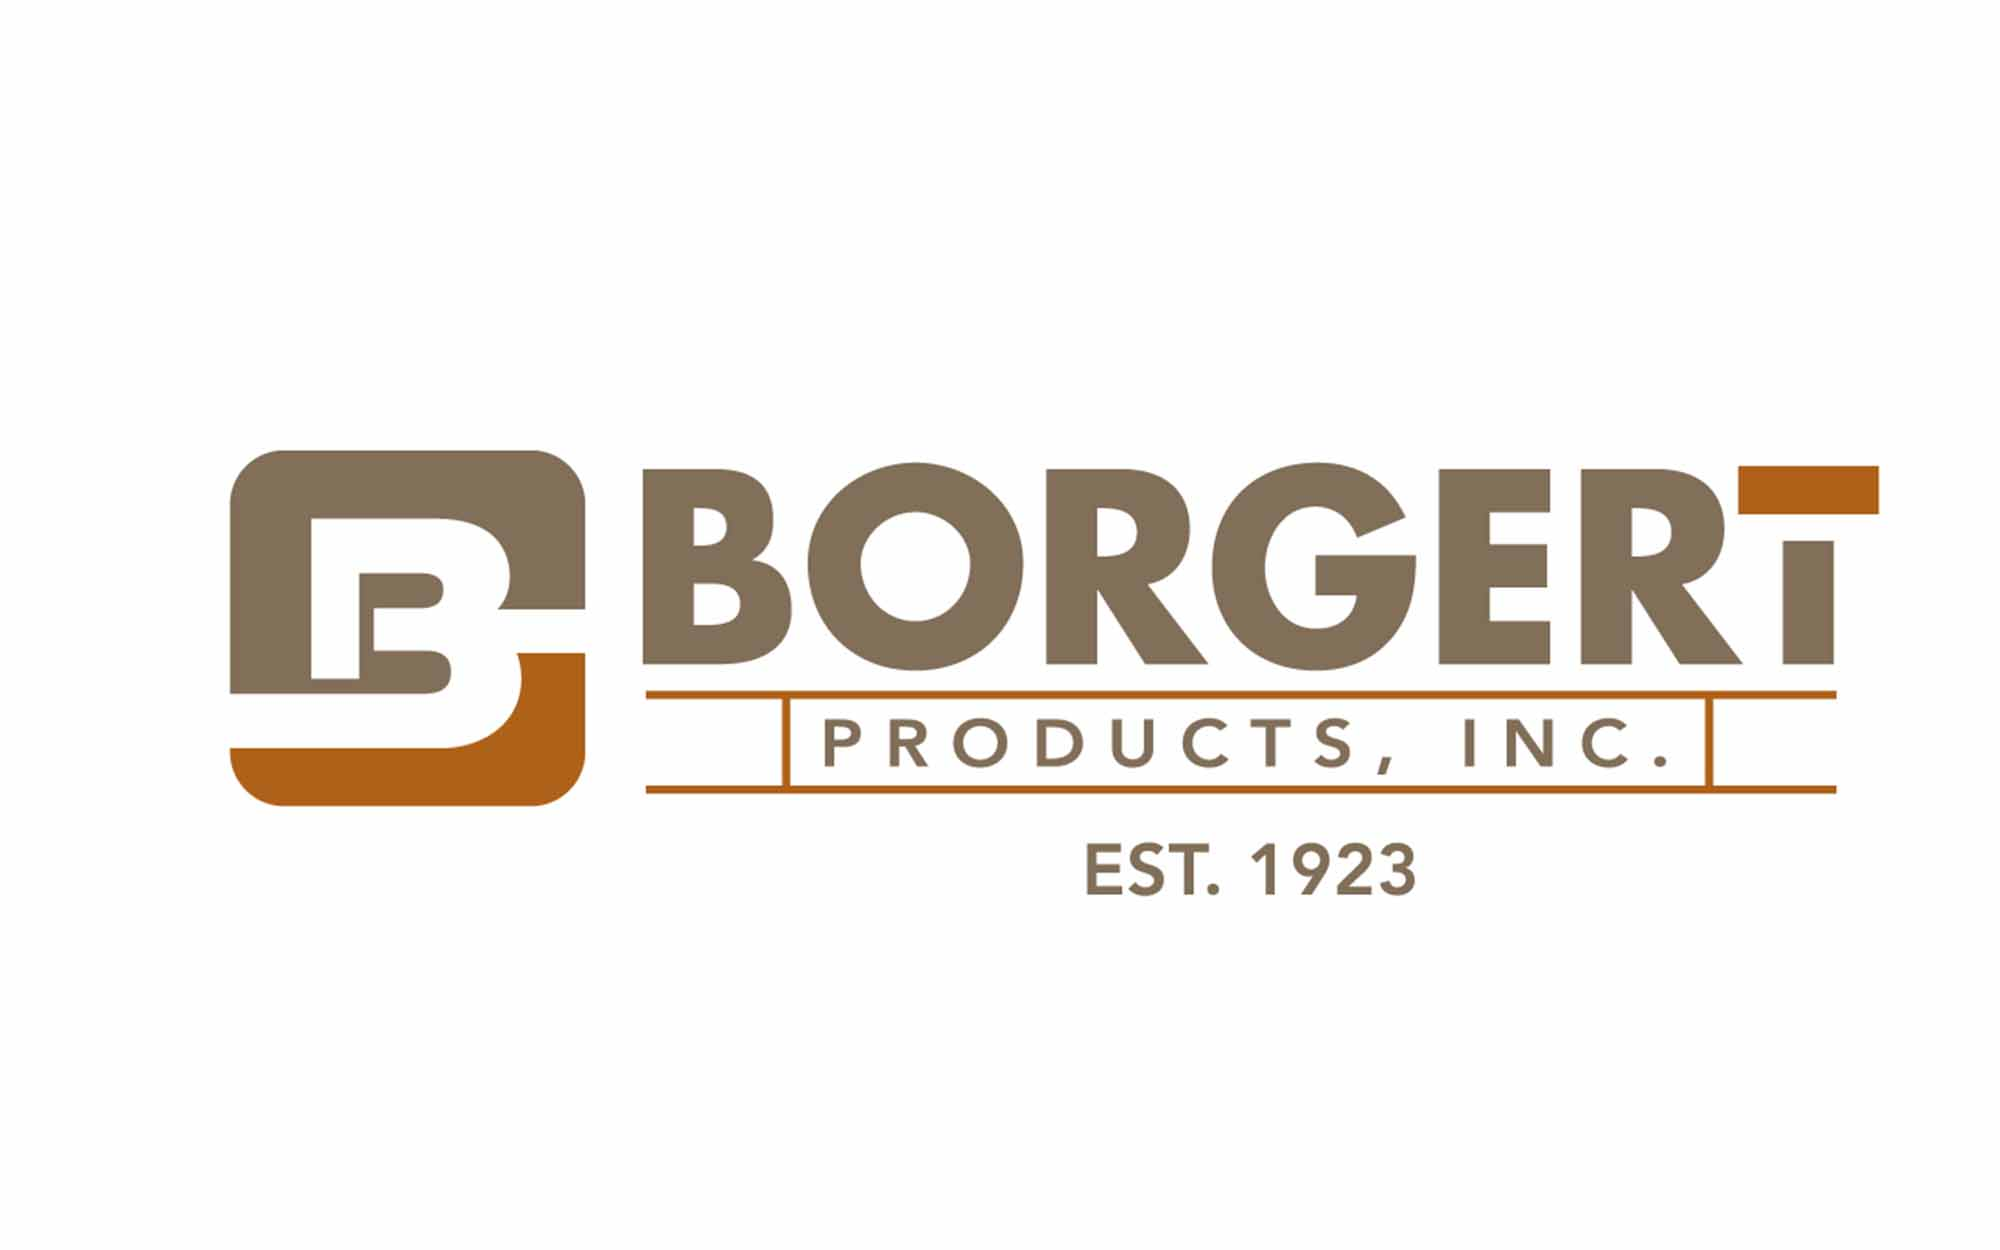 Borgert Products - At Borgert, our beauty isn't only skin deep—just look inside and see we use the finest ingredients available. We have the good fortune to be located in an area that is abundant in granite, making us the only manufacturer in the Midwest using granite aggregates in our products.